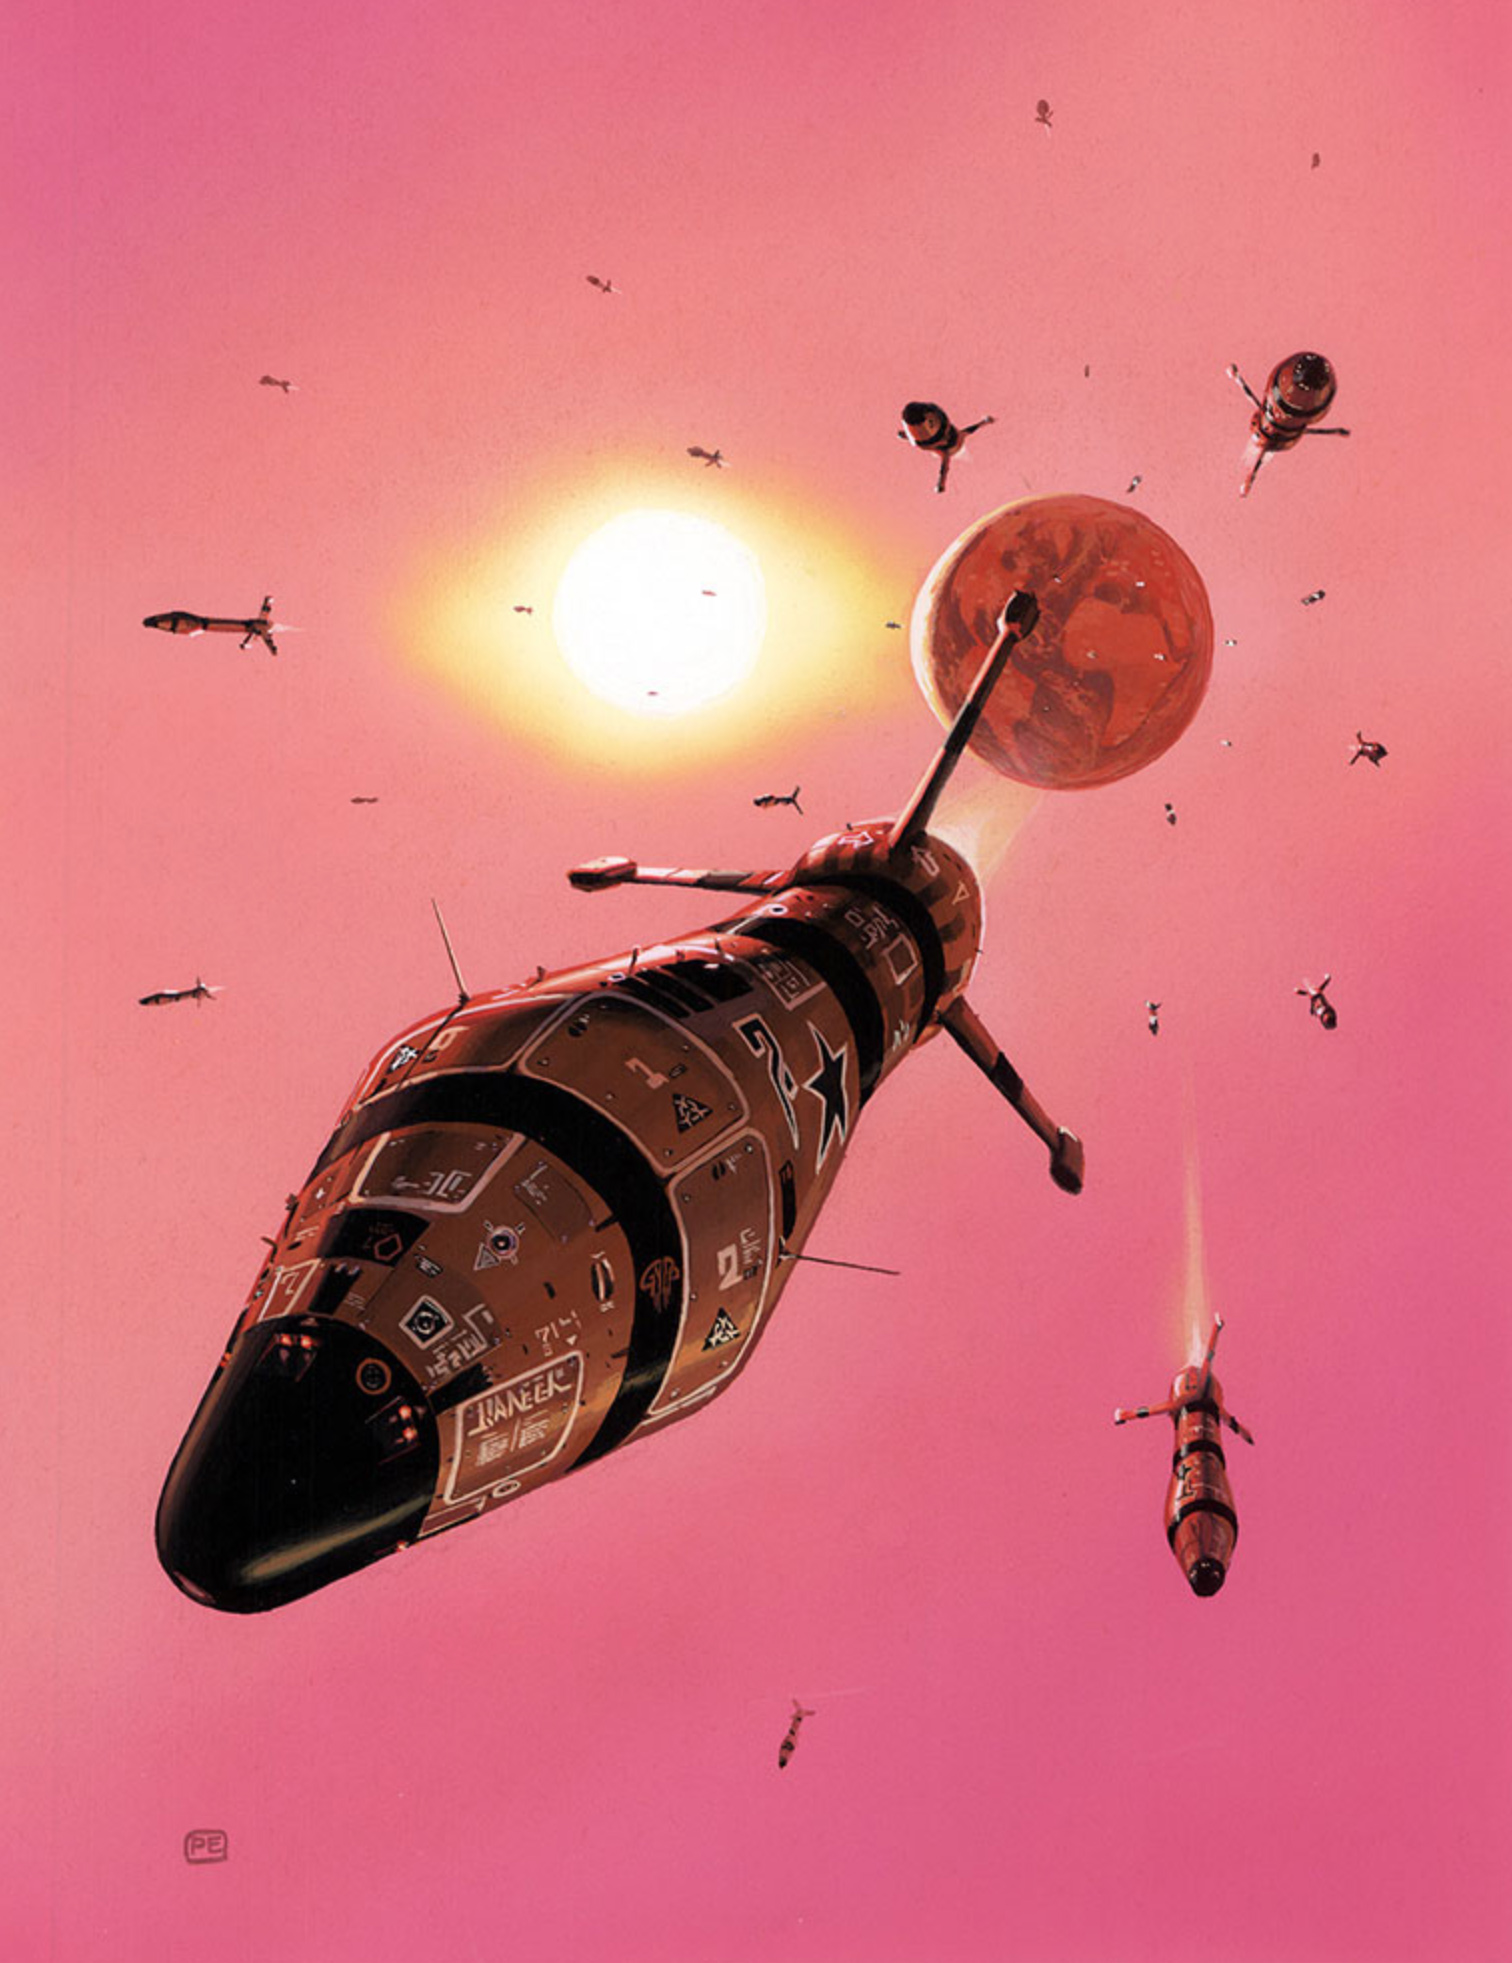 Peter Elson - Pebble In The Sky